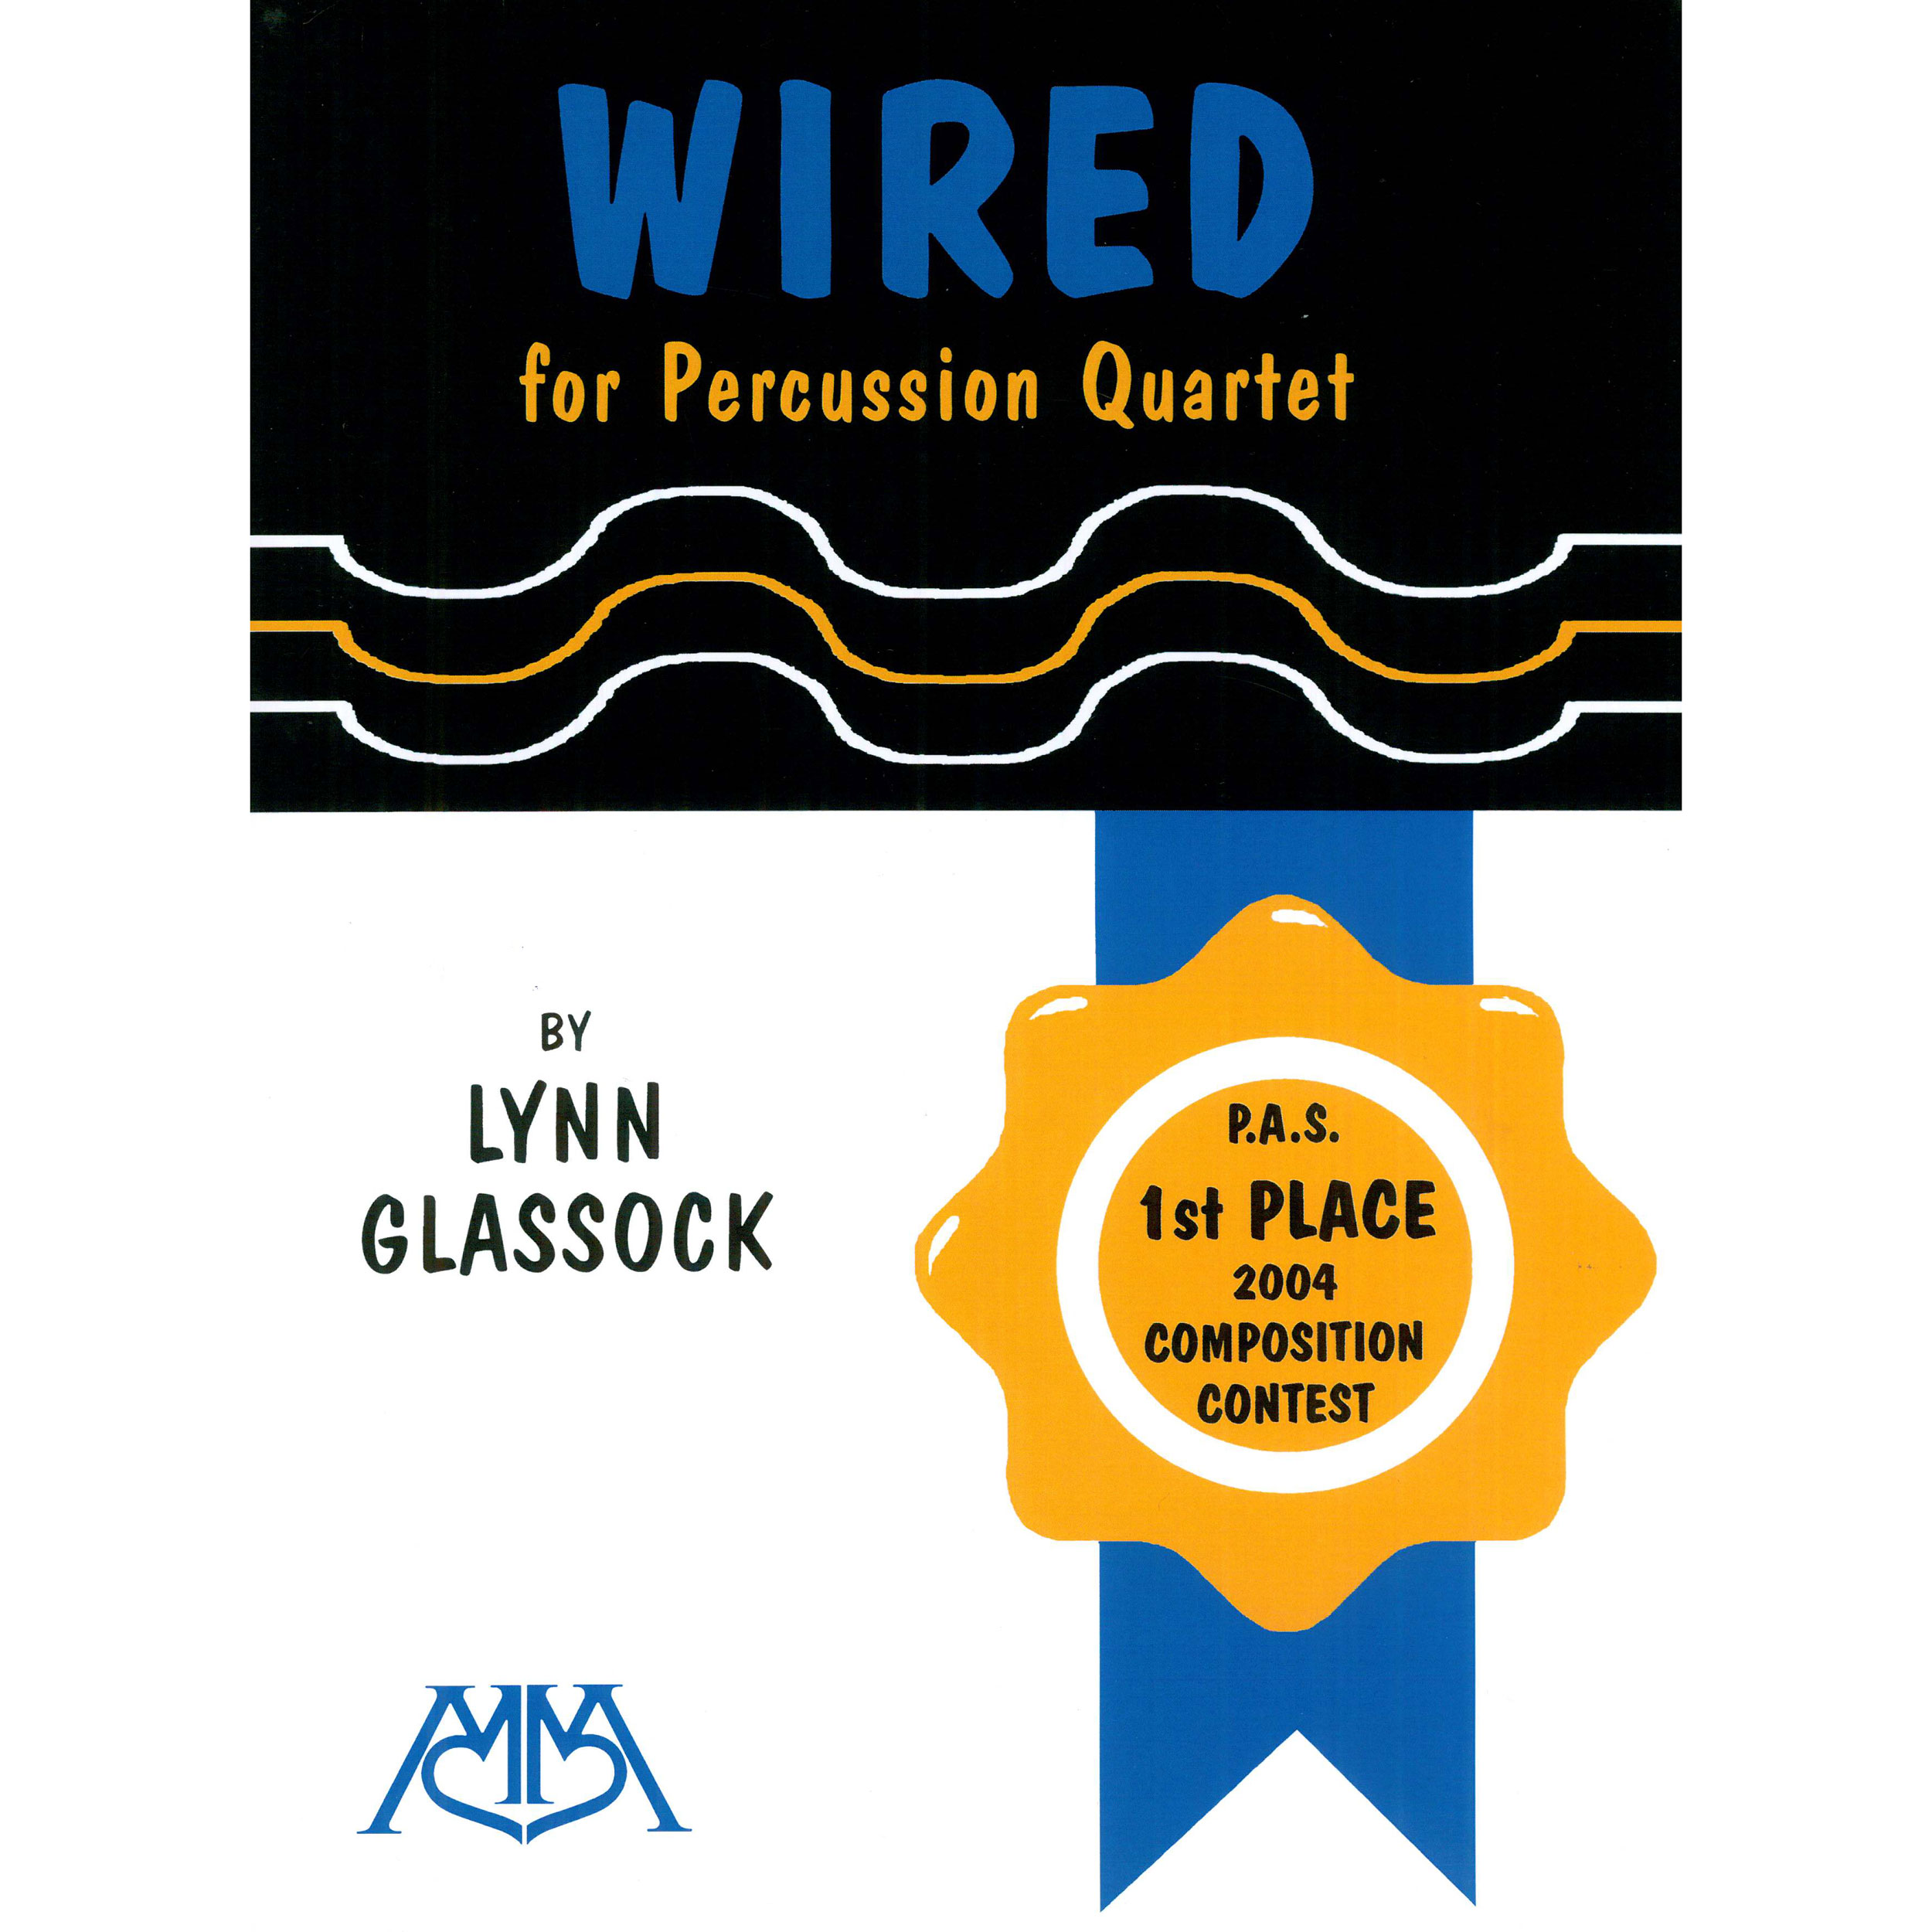 Wired by Lynn Glassock